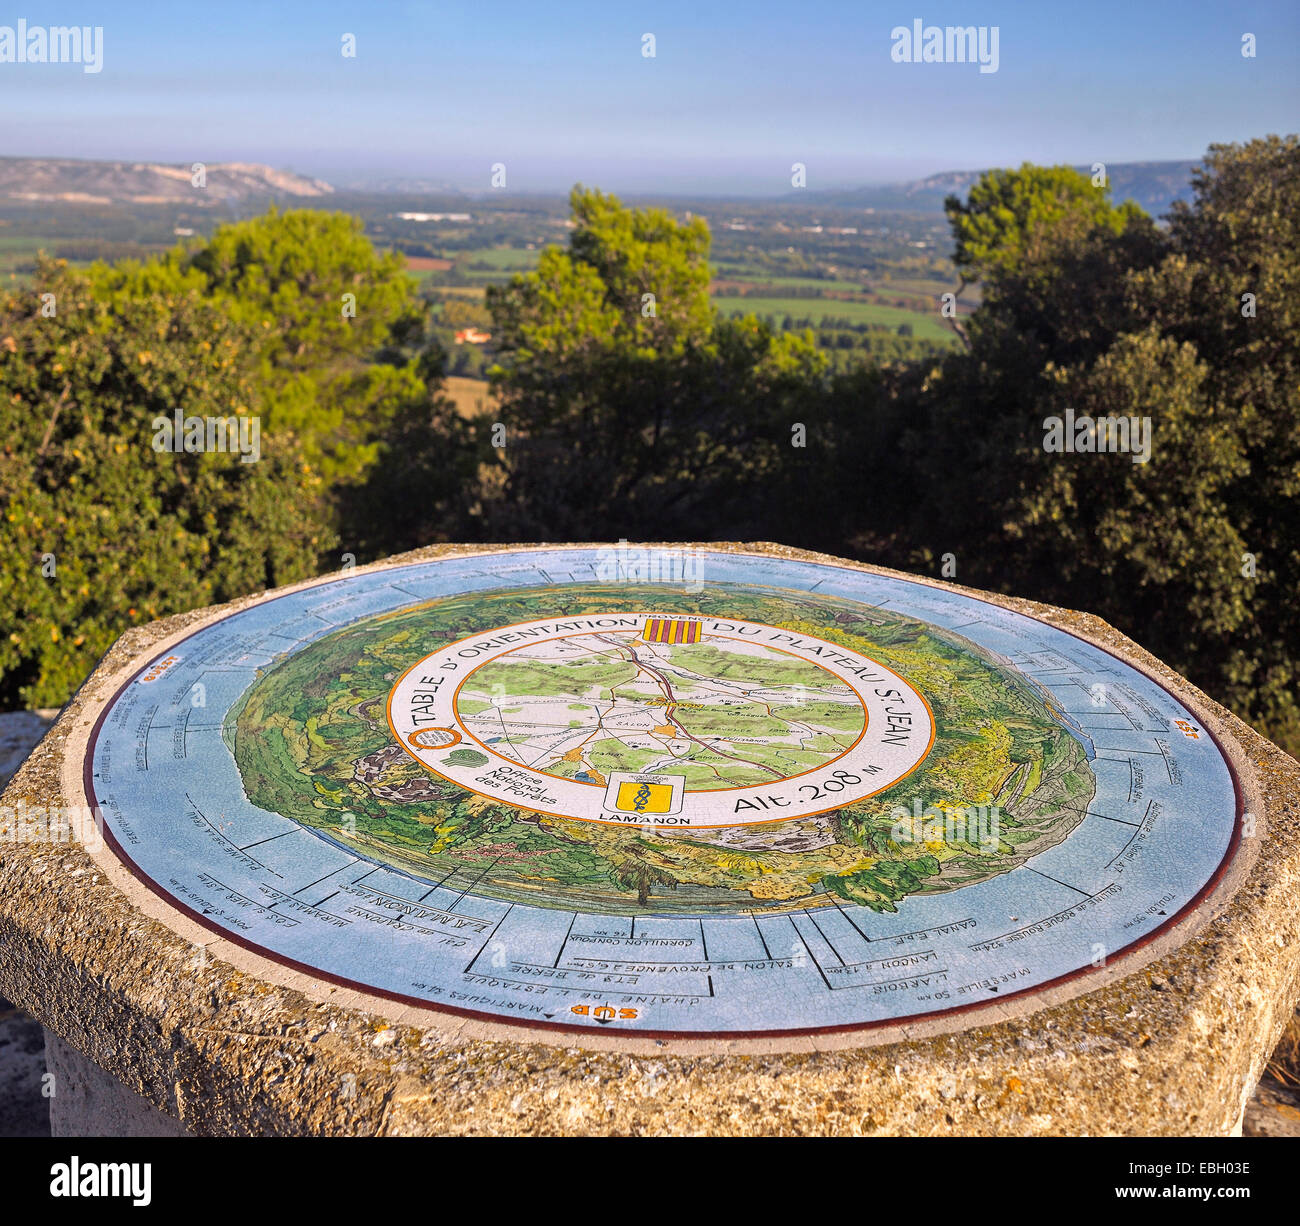 viewpoint indicator on top of a rock, France, Provence, Cales, Lamanon Salon de Provence - Stock Image